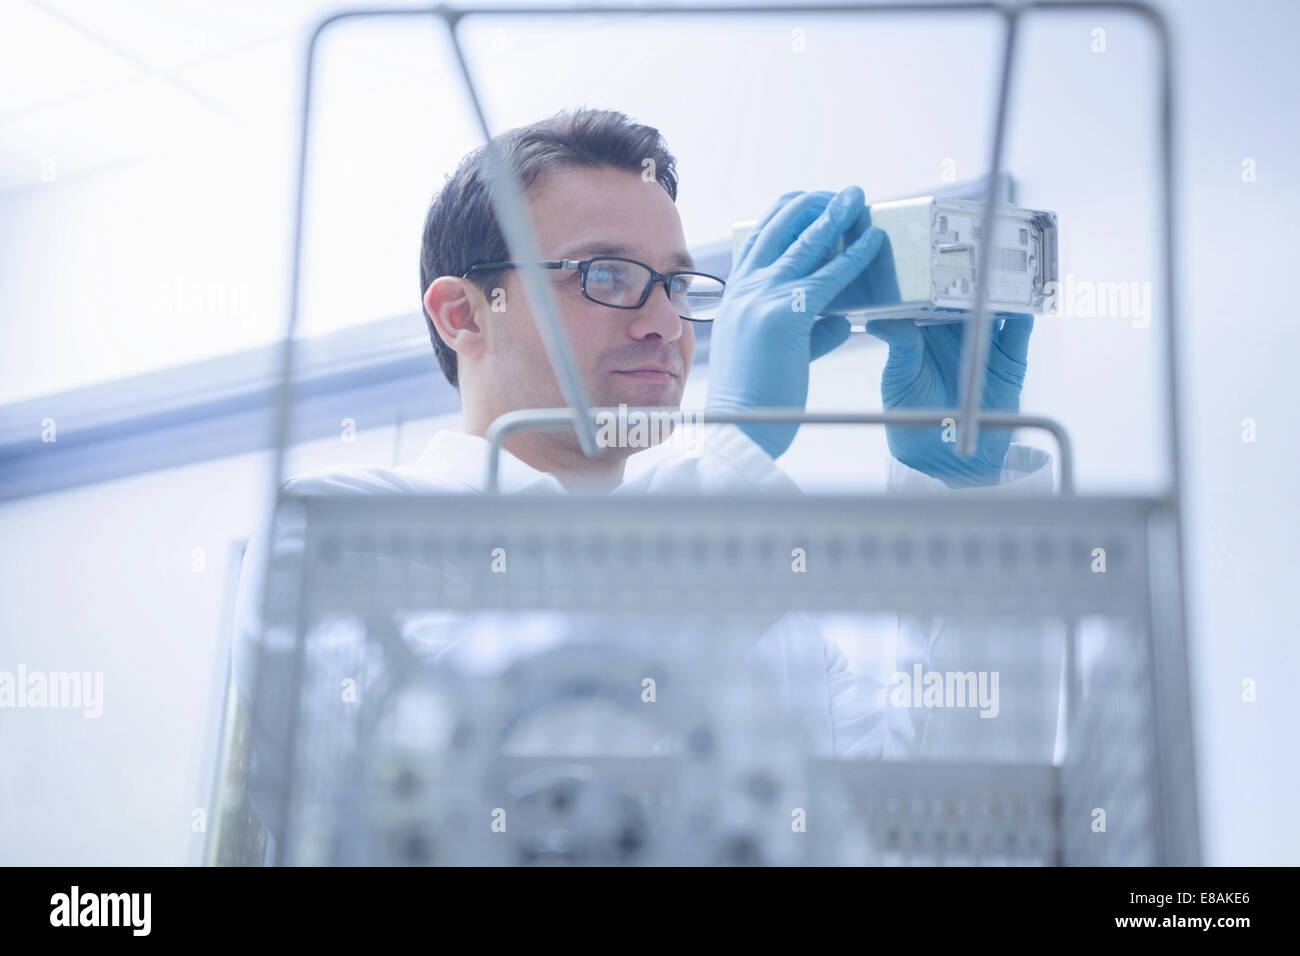 Engineer working in CNC engineering, production and quality control - Stock Image